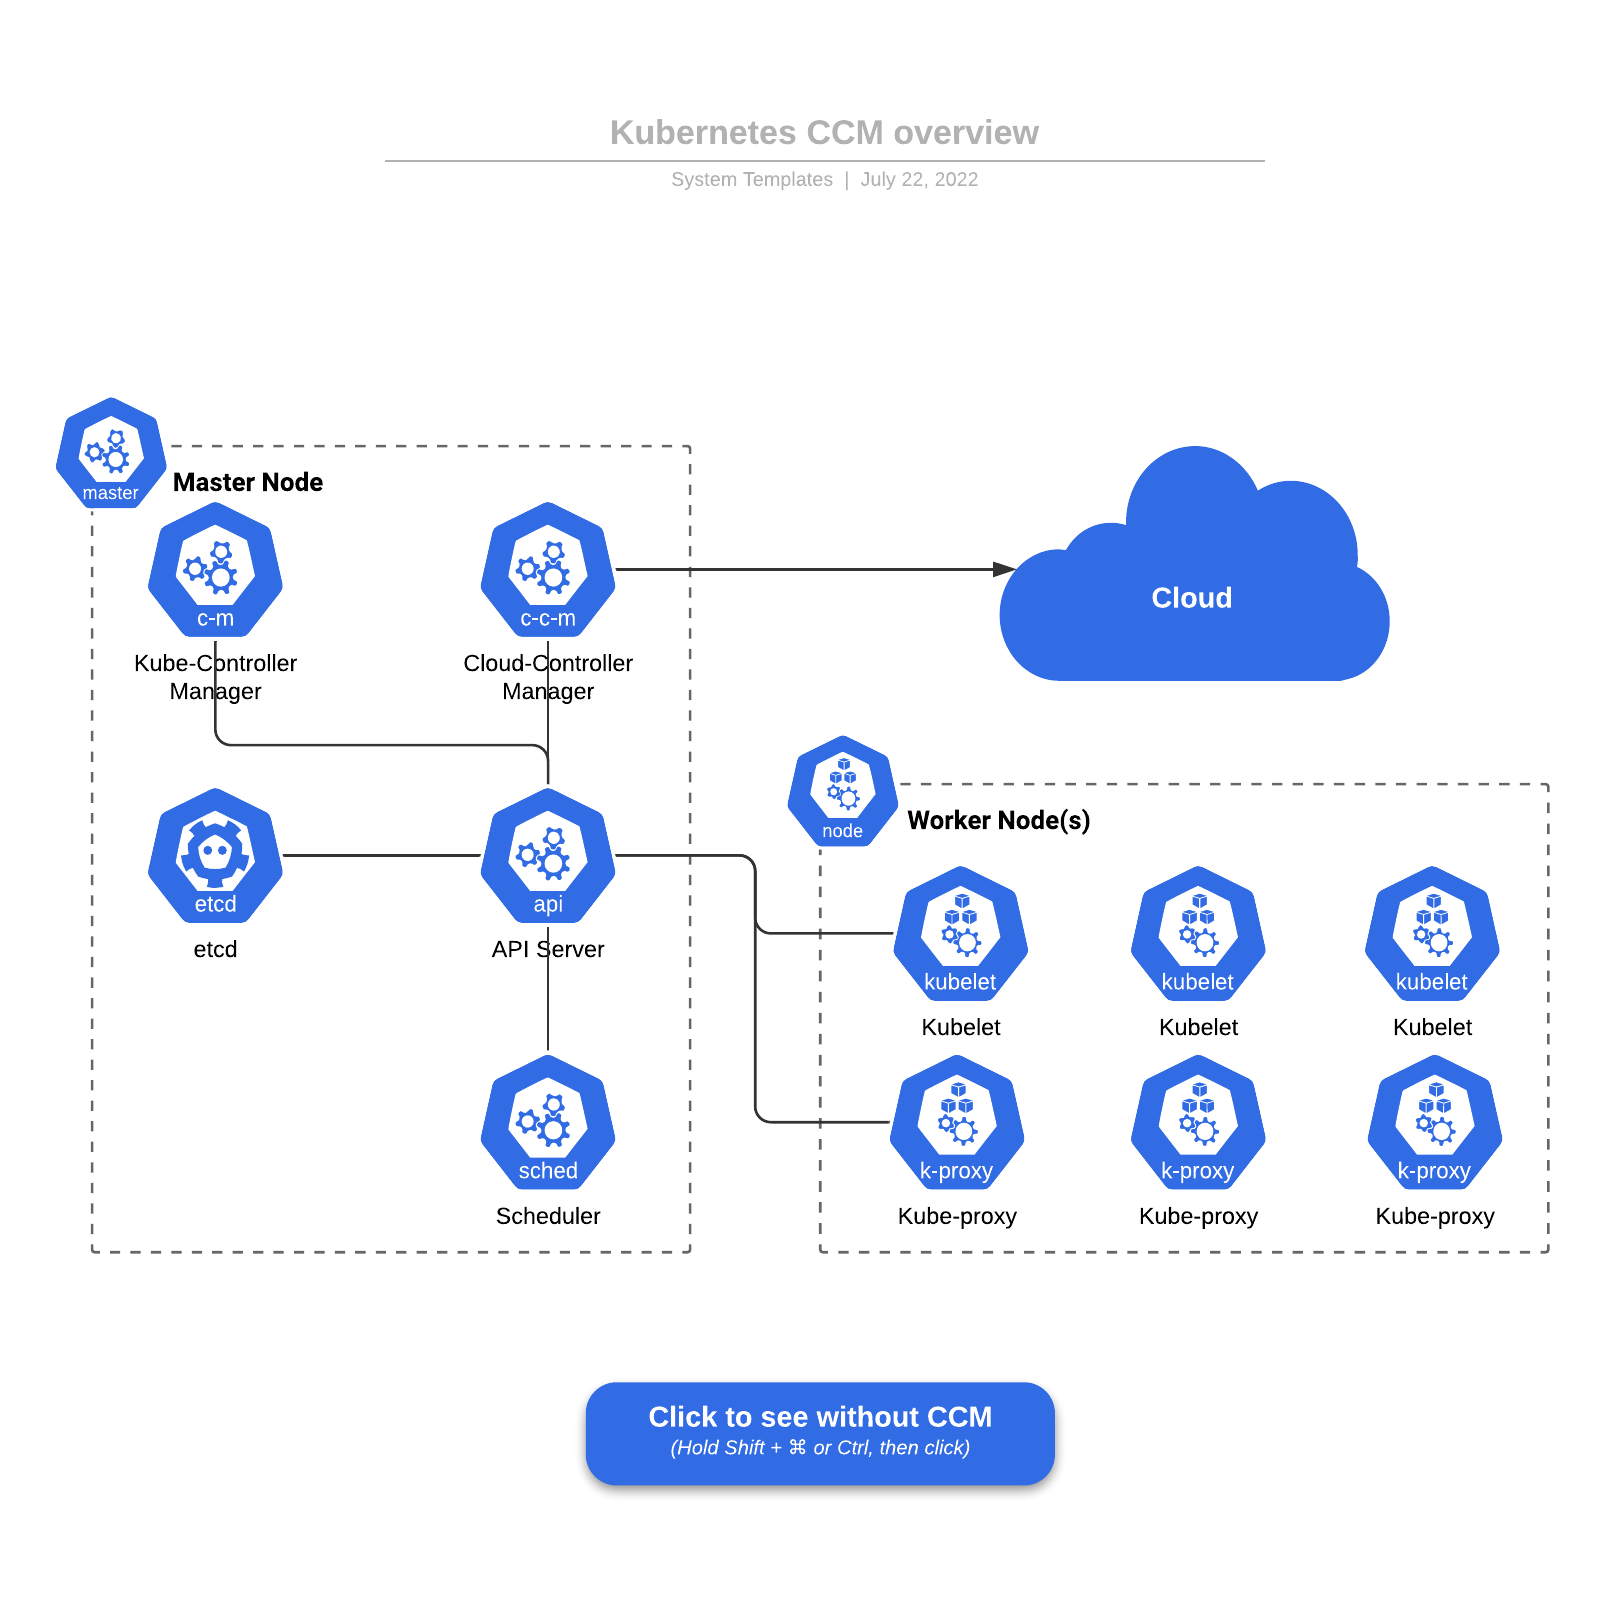 Kubernetes CCM overview